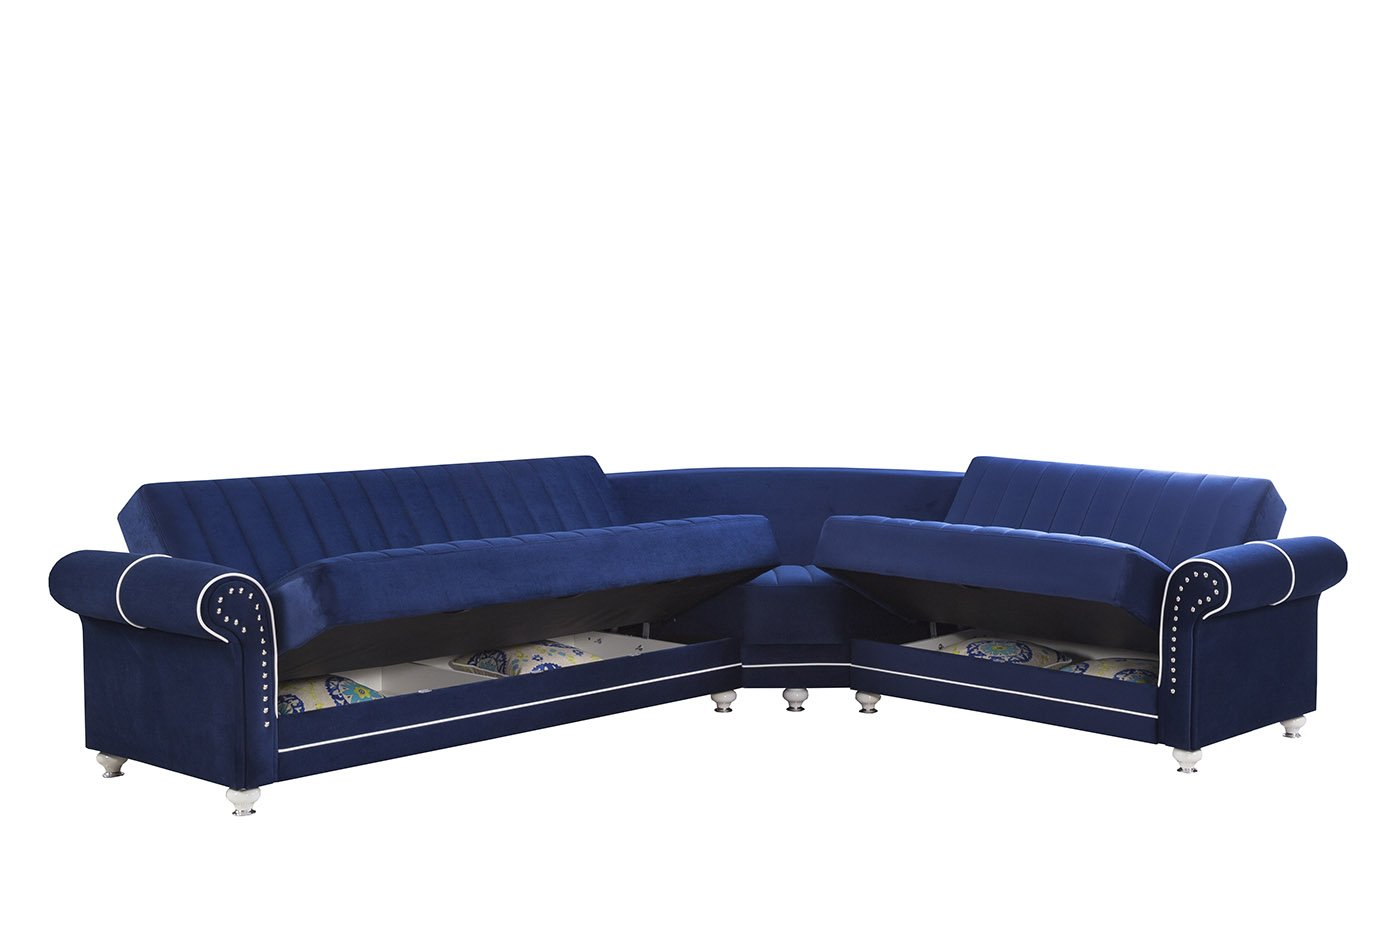 Royal Home Riva Dark Blue Convertible Sectional by Casamode : Royal Riva Dark Blue Sectional 002 from futonland.com size 1400 x 933 jpeg 110kB